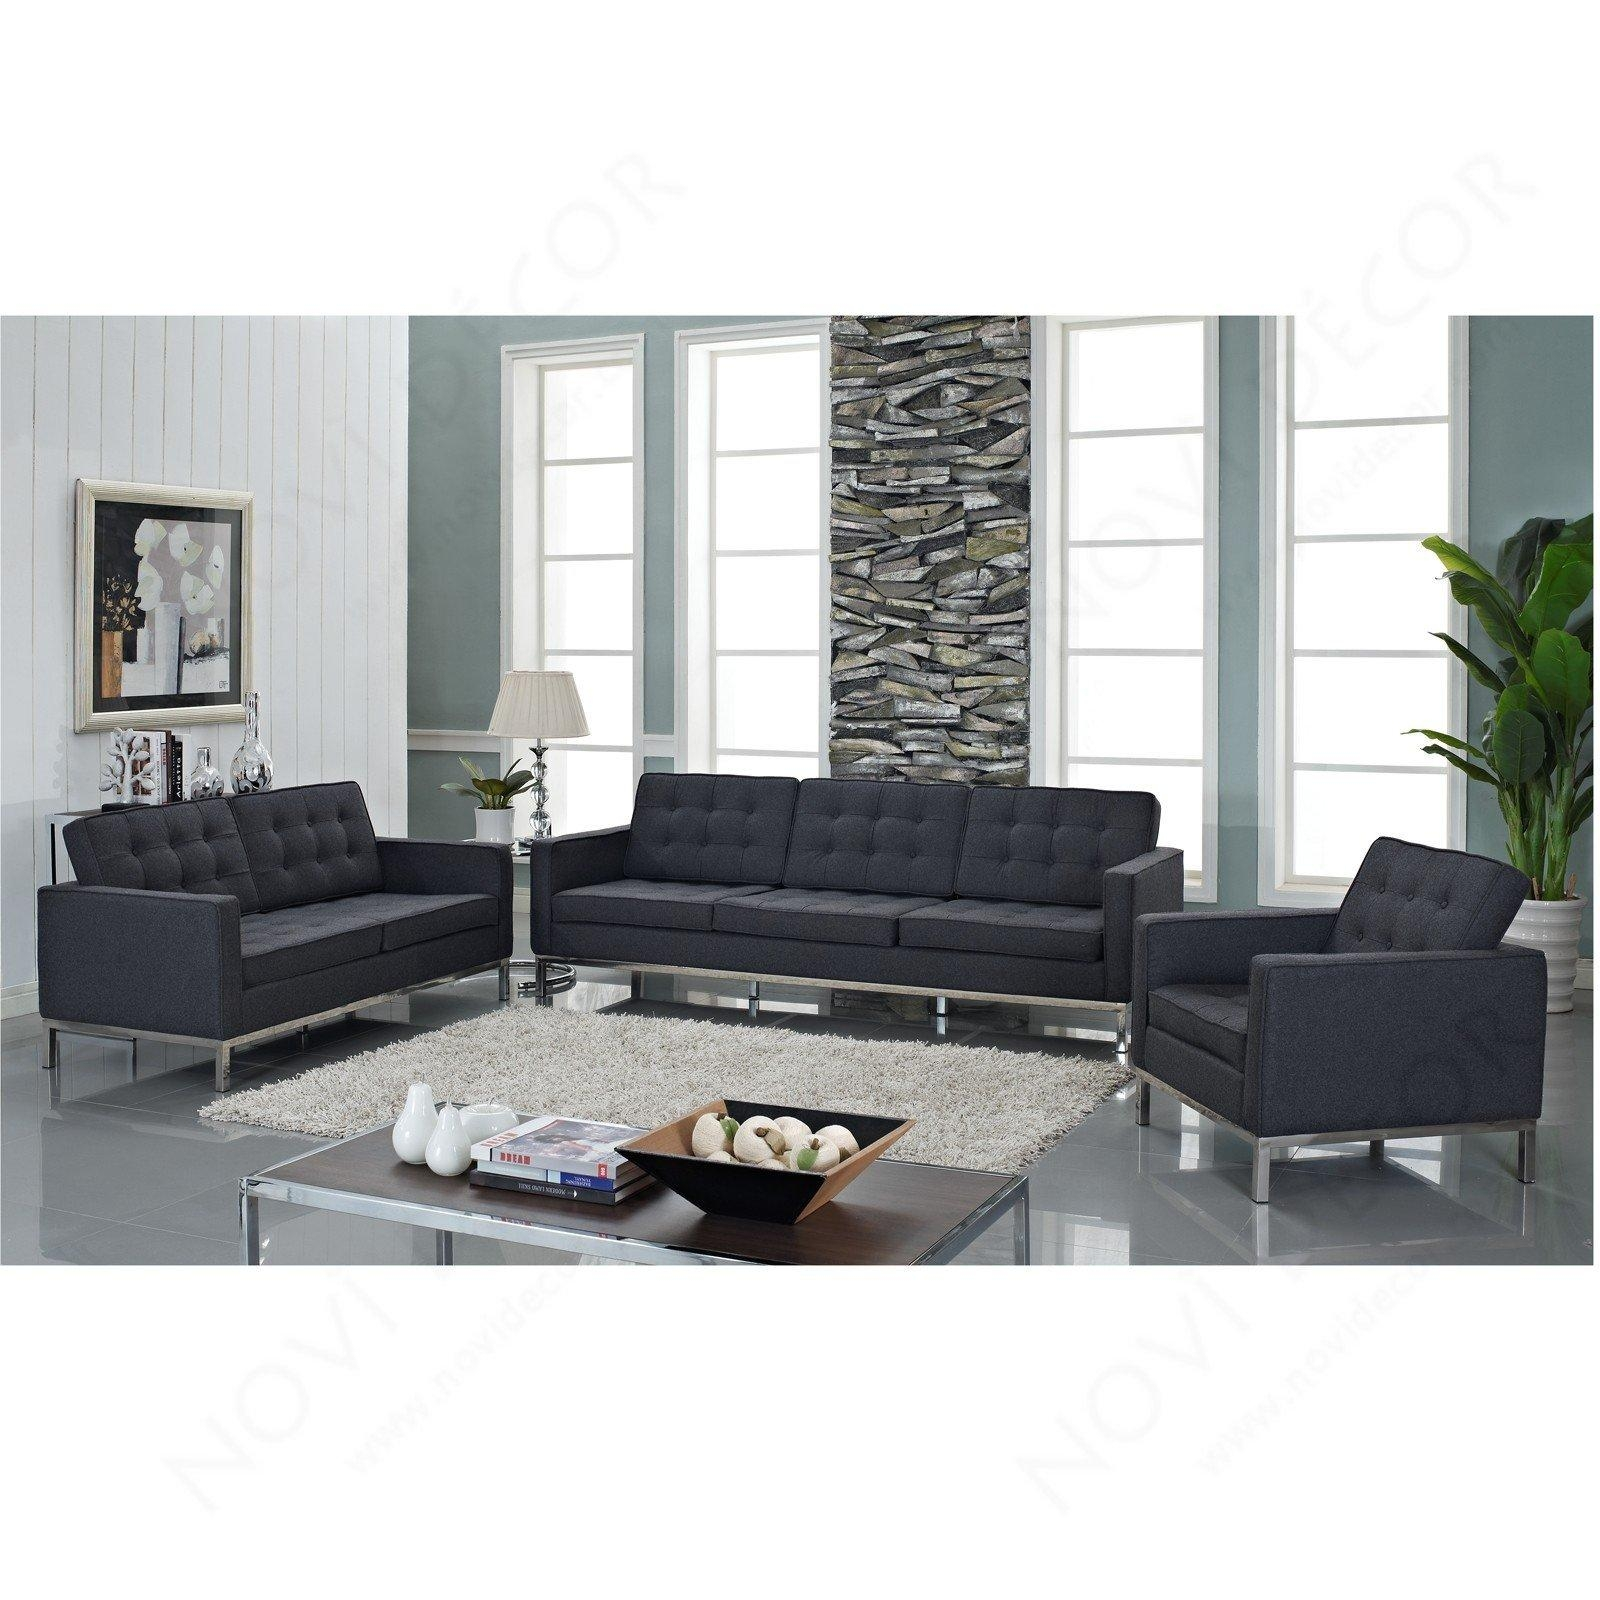 Florence Style Sofa In Wool (Multiple Colors) | Designer Reproduction Pertaining To Florence Sofas (View 5 of 20)